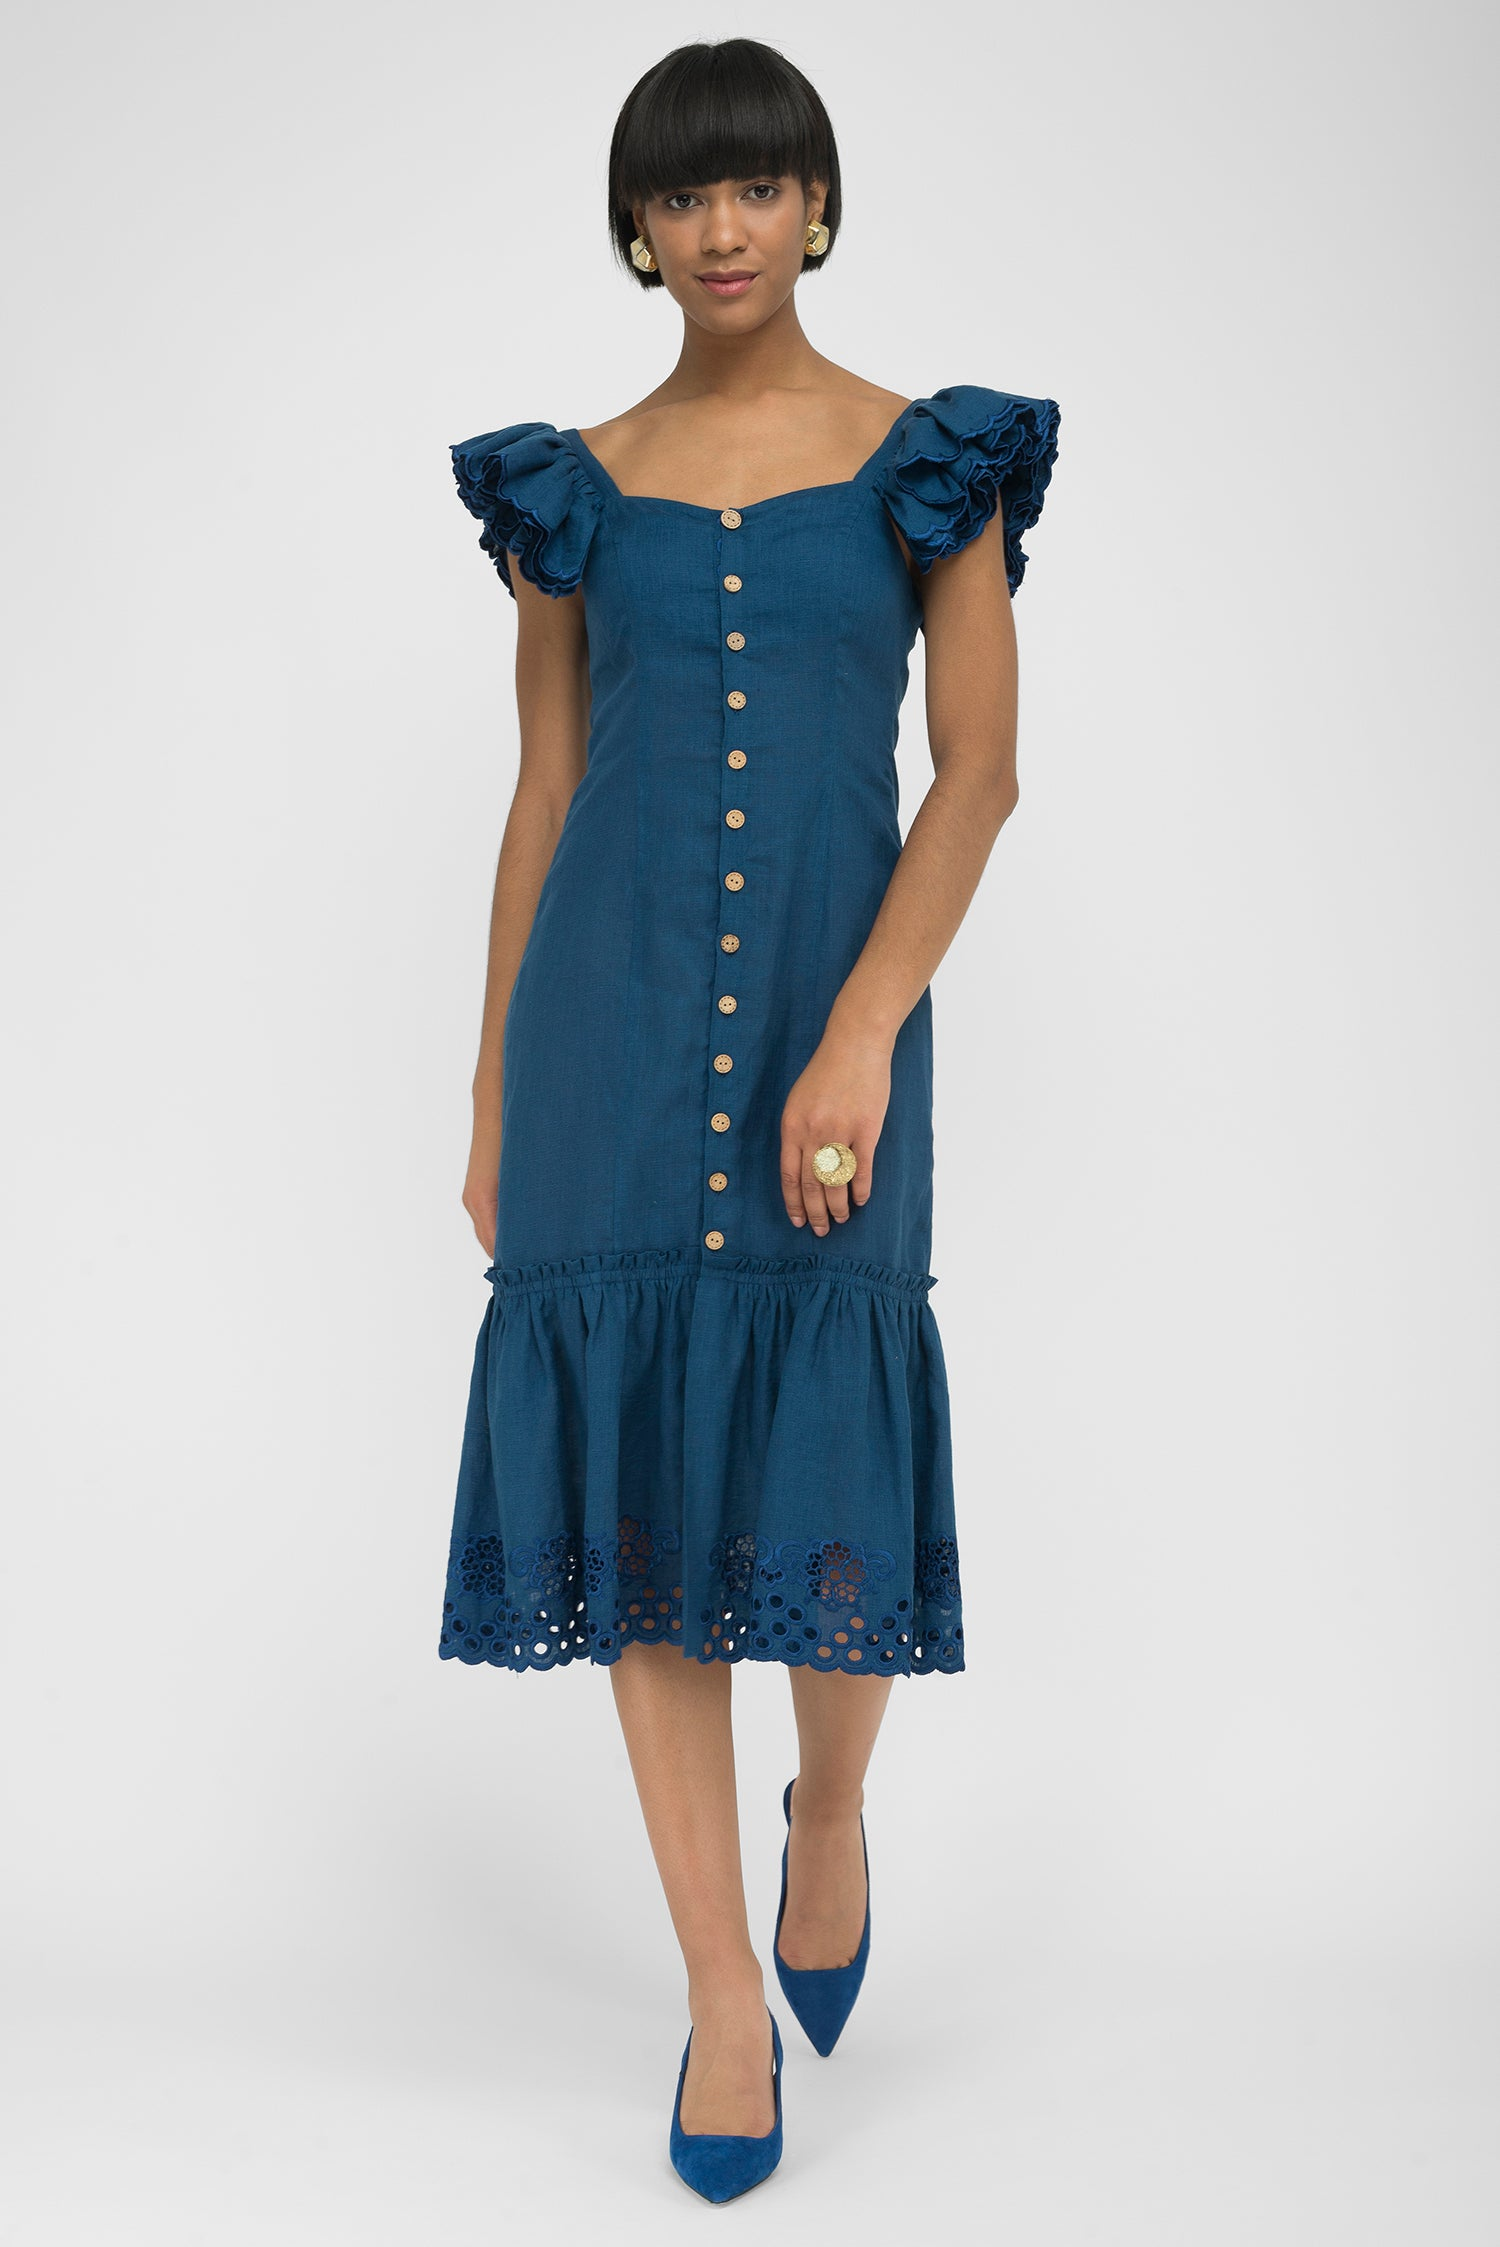 FANM MON PATARA Indigo Blue Linen Button Front Embroidered Midi Dress